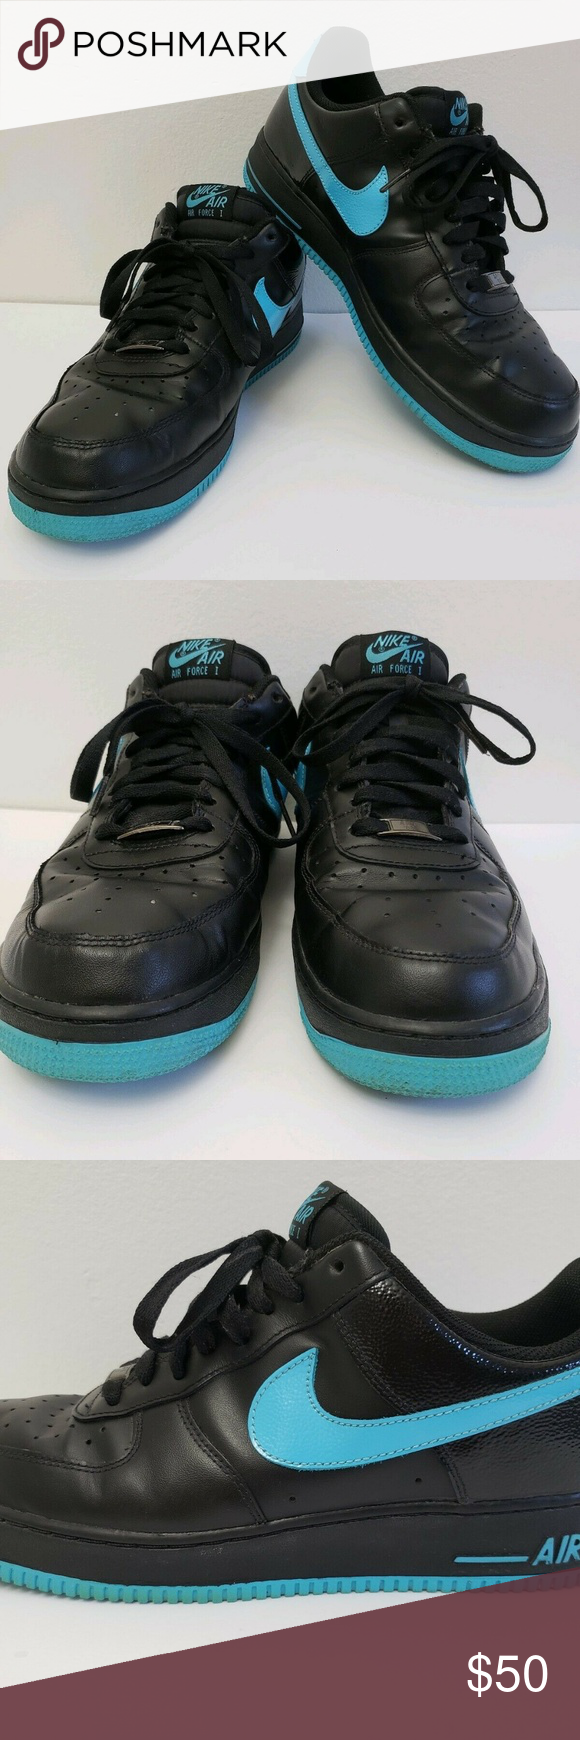 nike air force 82 shoes